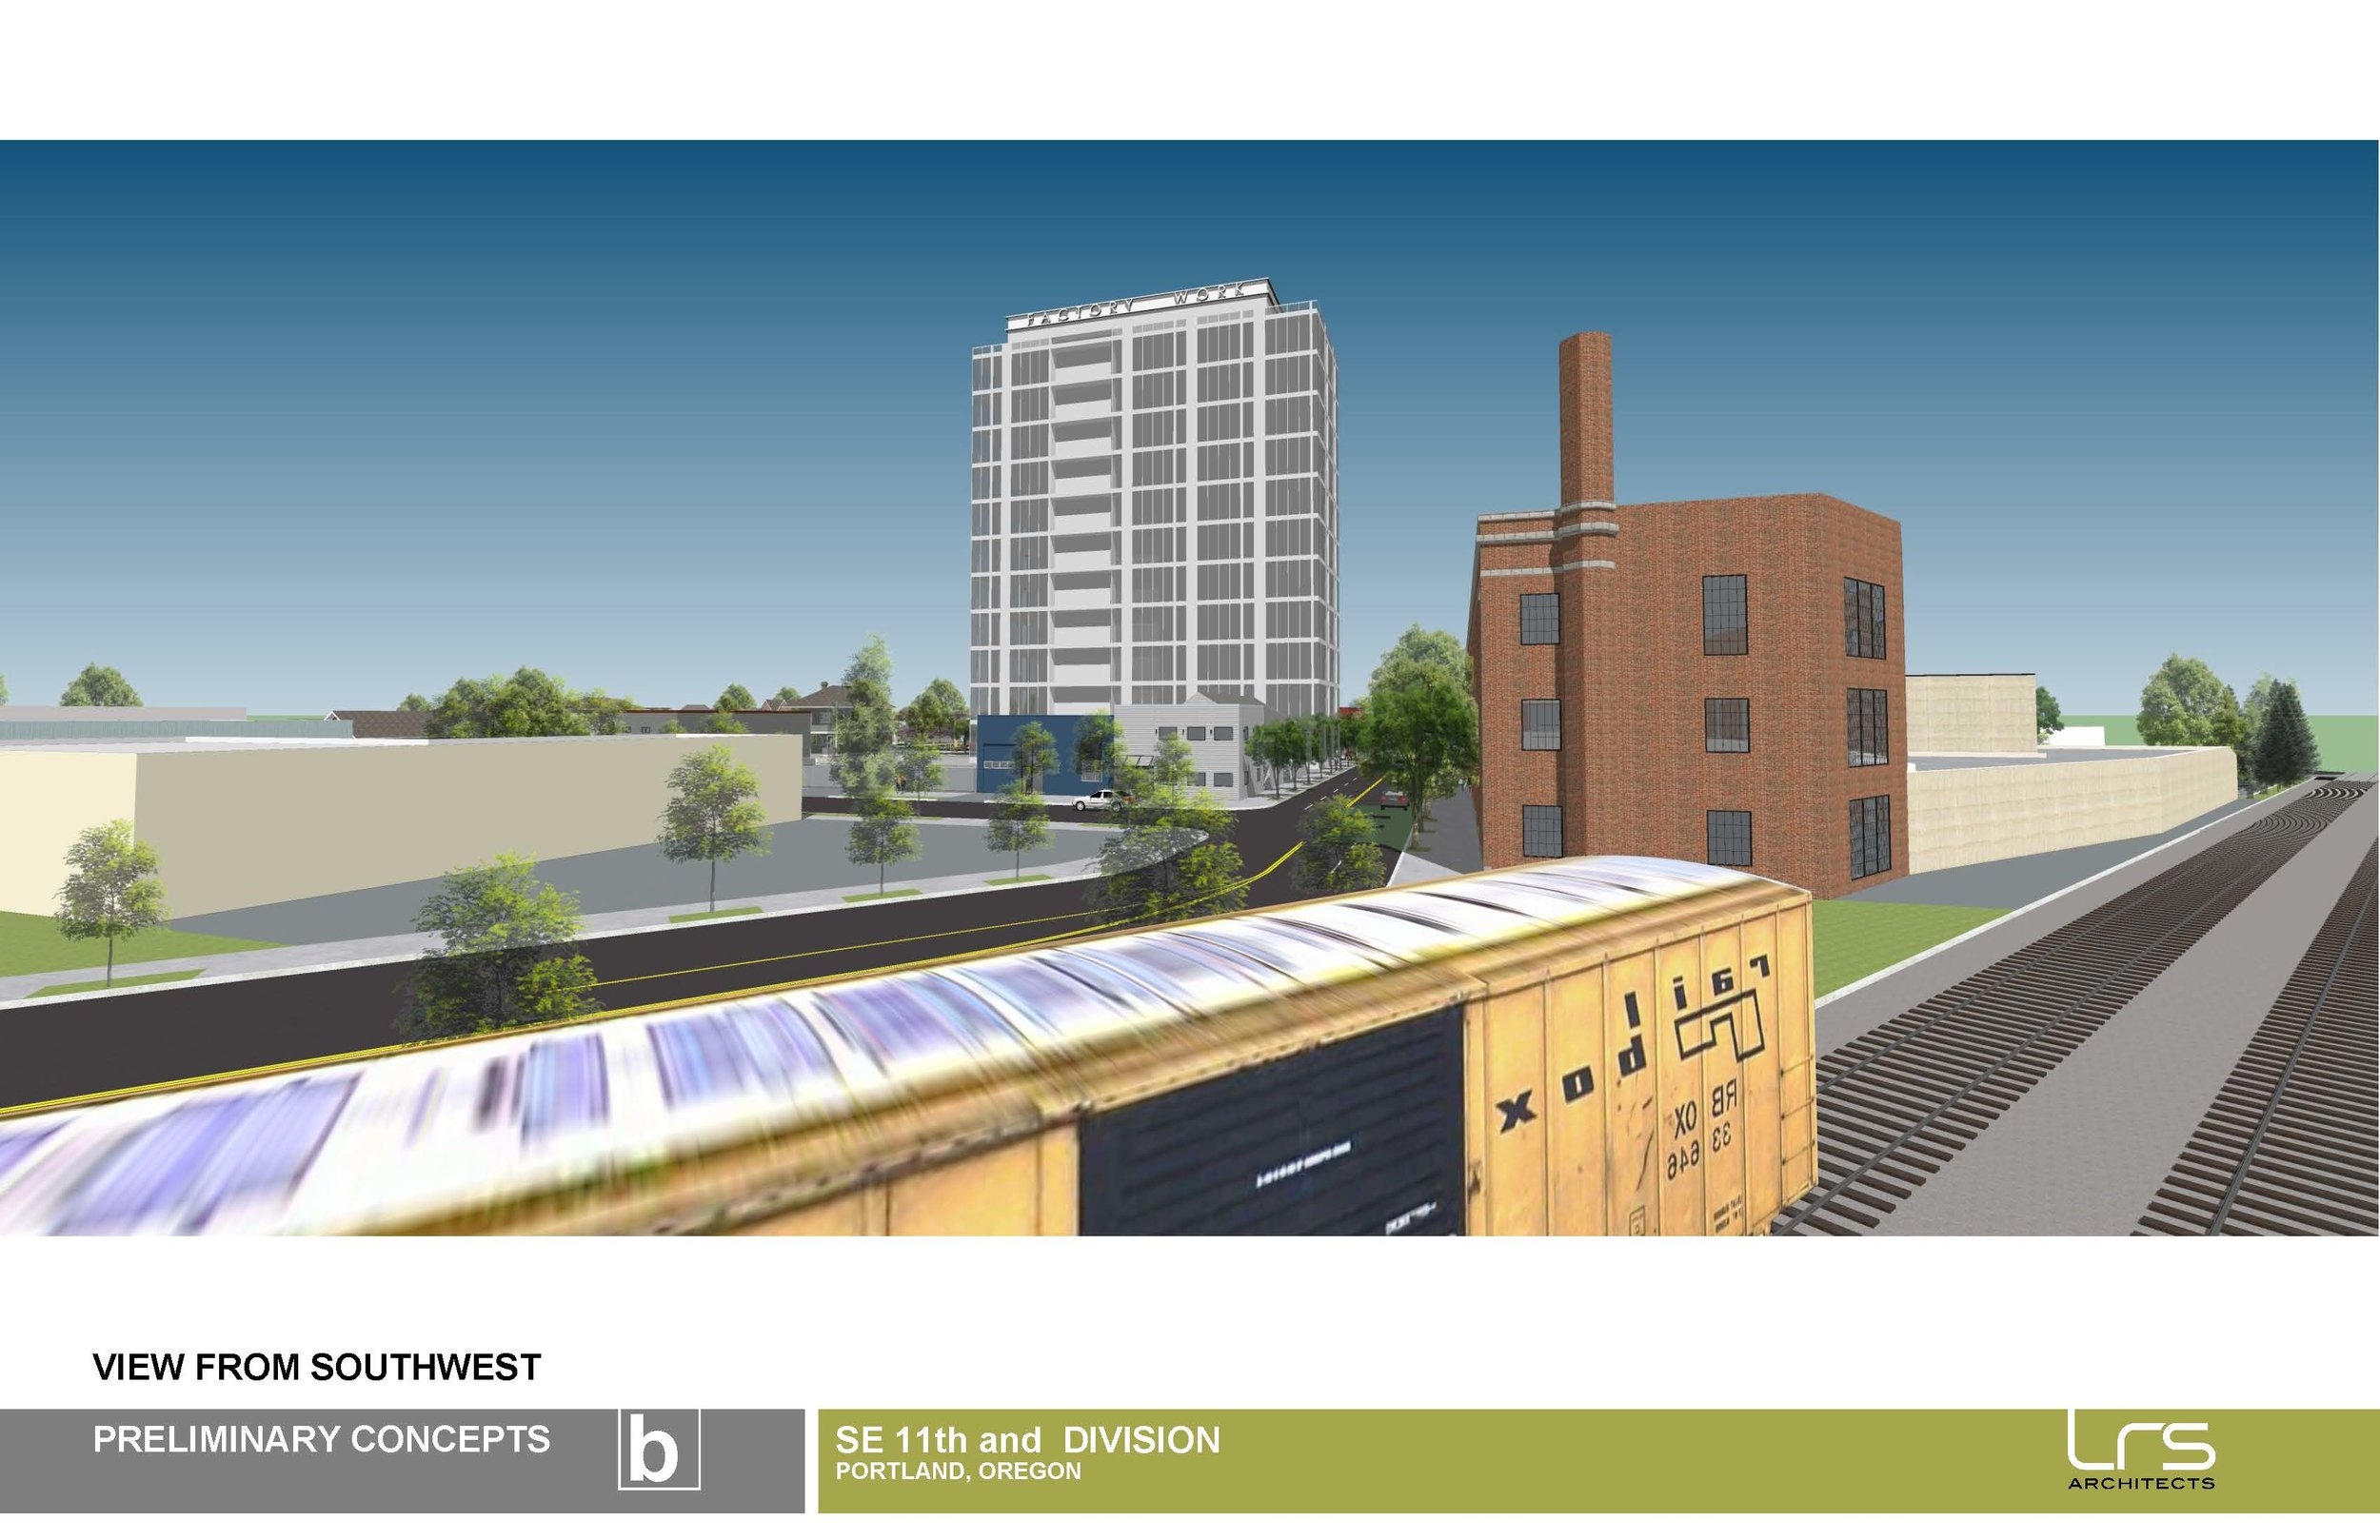 11th & Division Concept Drawings from LRS_Page_12.jpg